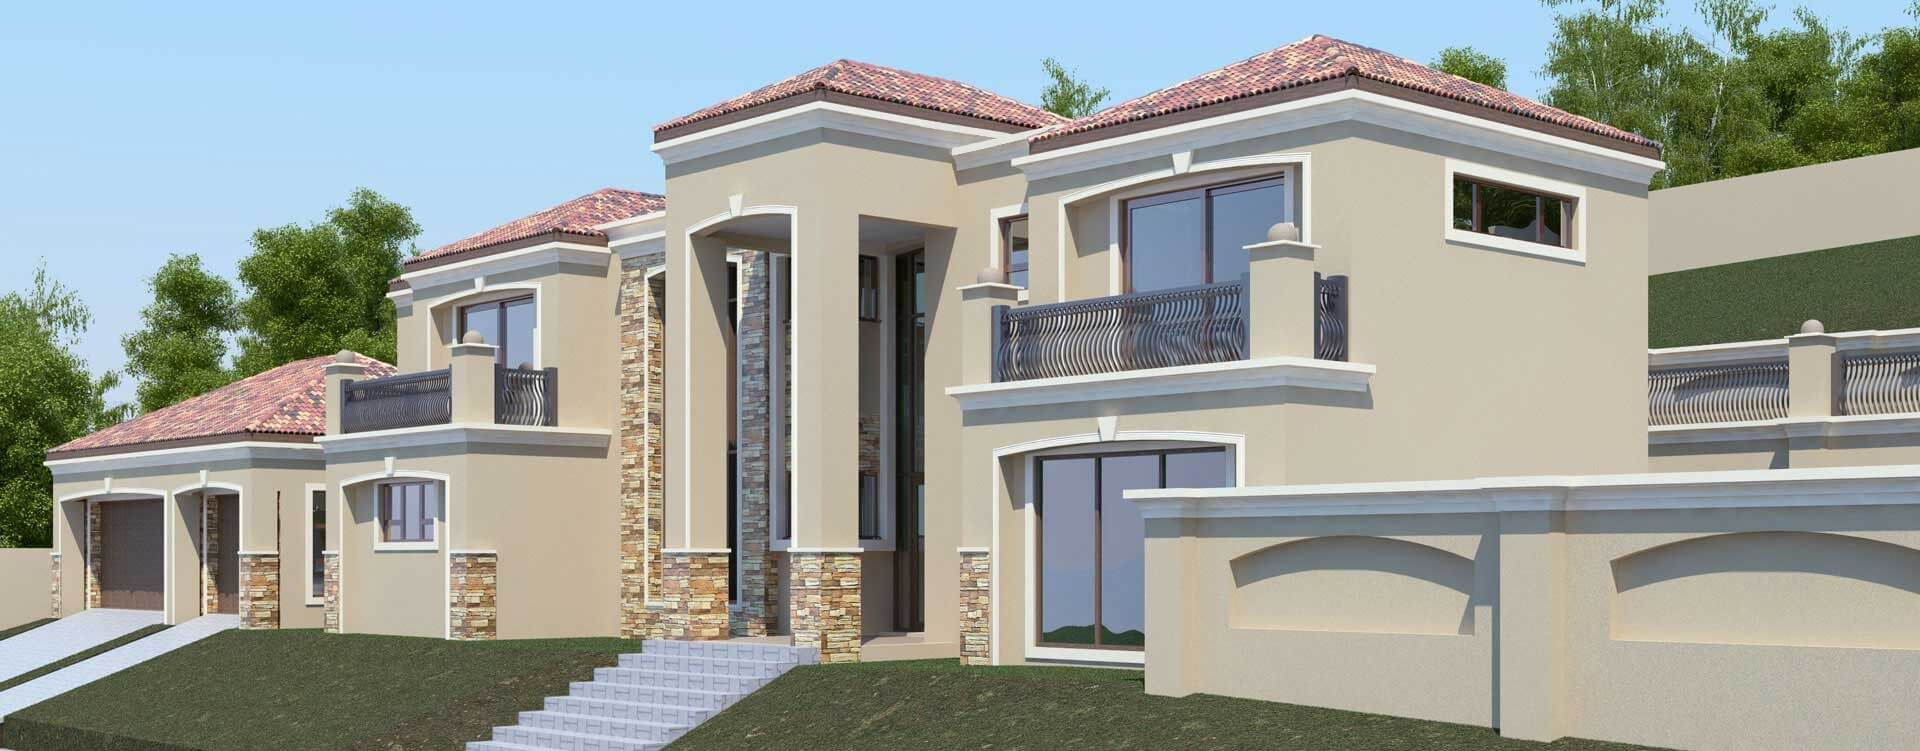 House Plans South Africa, House Designs In South Africa, South African House  Designs,